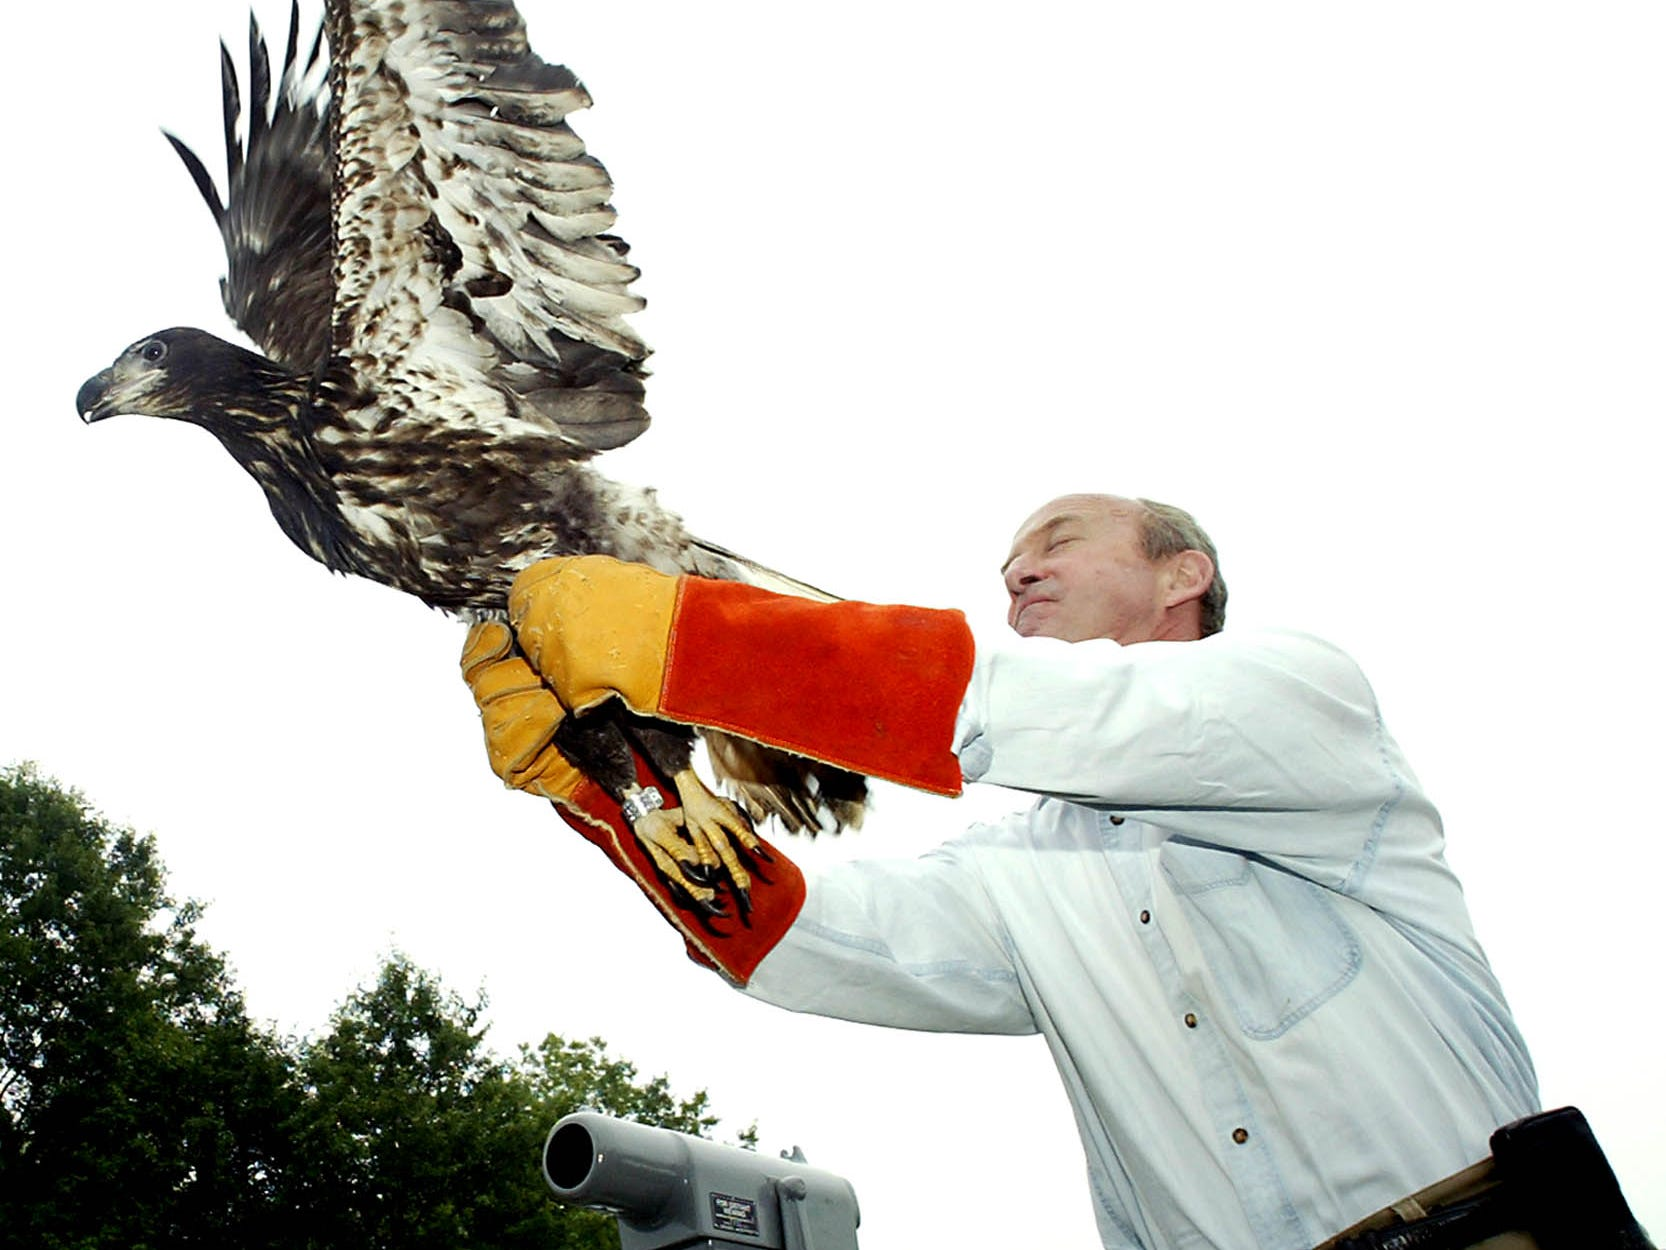 Millington--JULY 30, 2004--Congressman Rodney Frelinghuysen releases a two-year-old Bald Eagle that was rehabilitated at the Raptor Trust and set free at an overlook in the Great Swamp. 